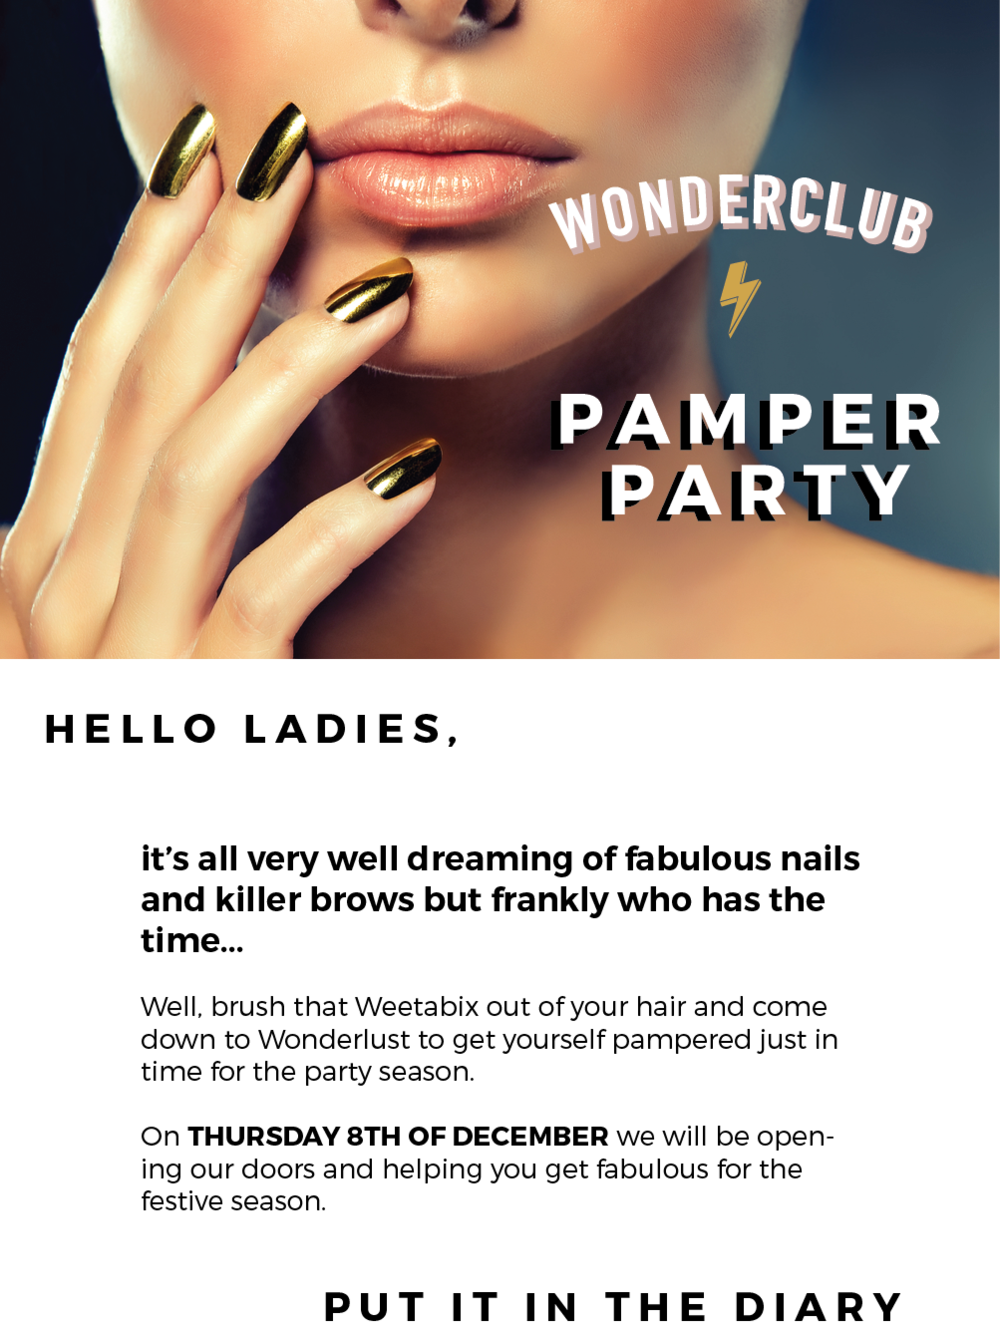 PAMPERPARTY2-01.png